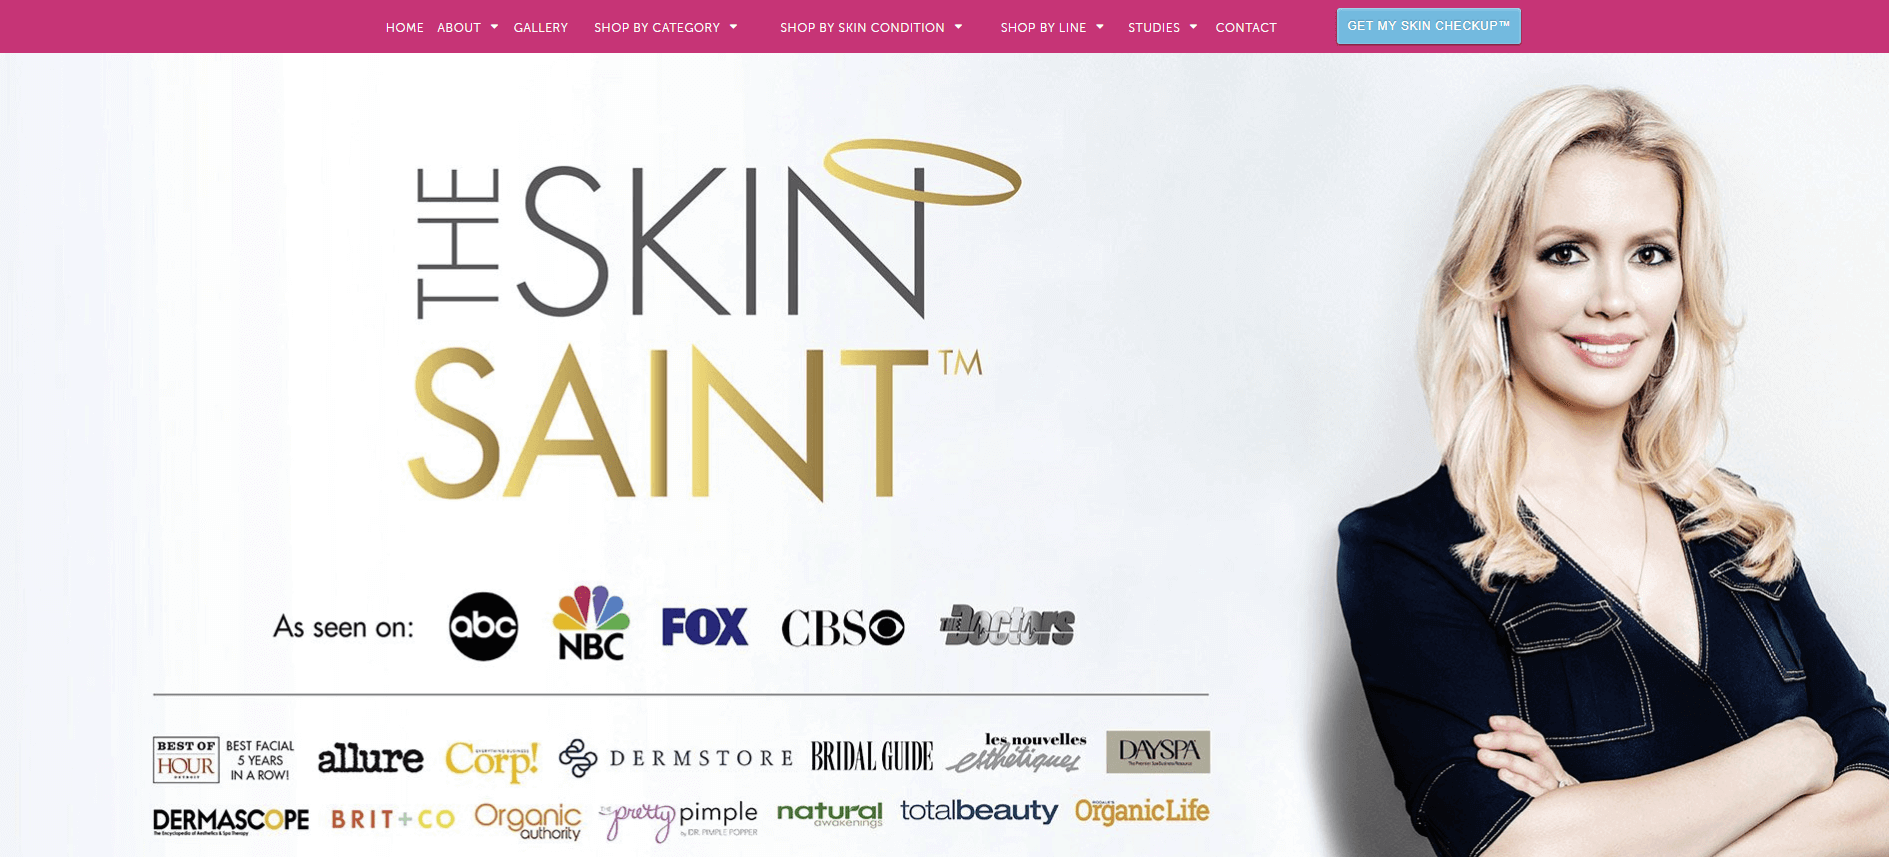 The Skin Saint - Case Study